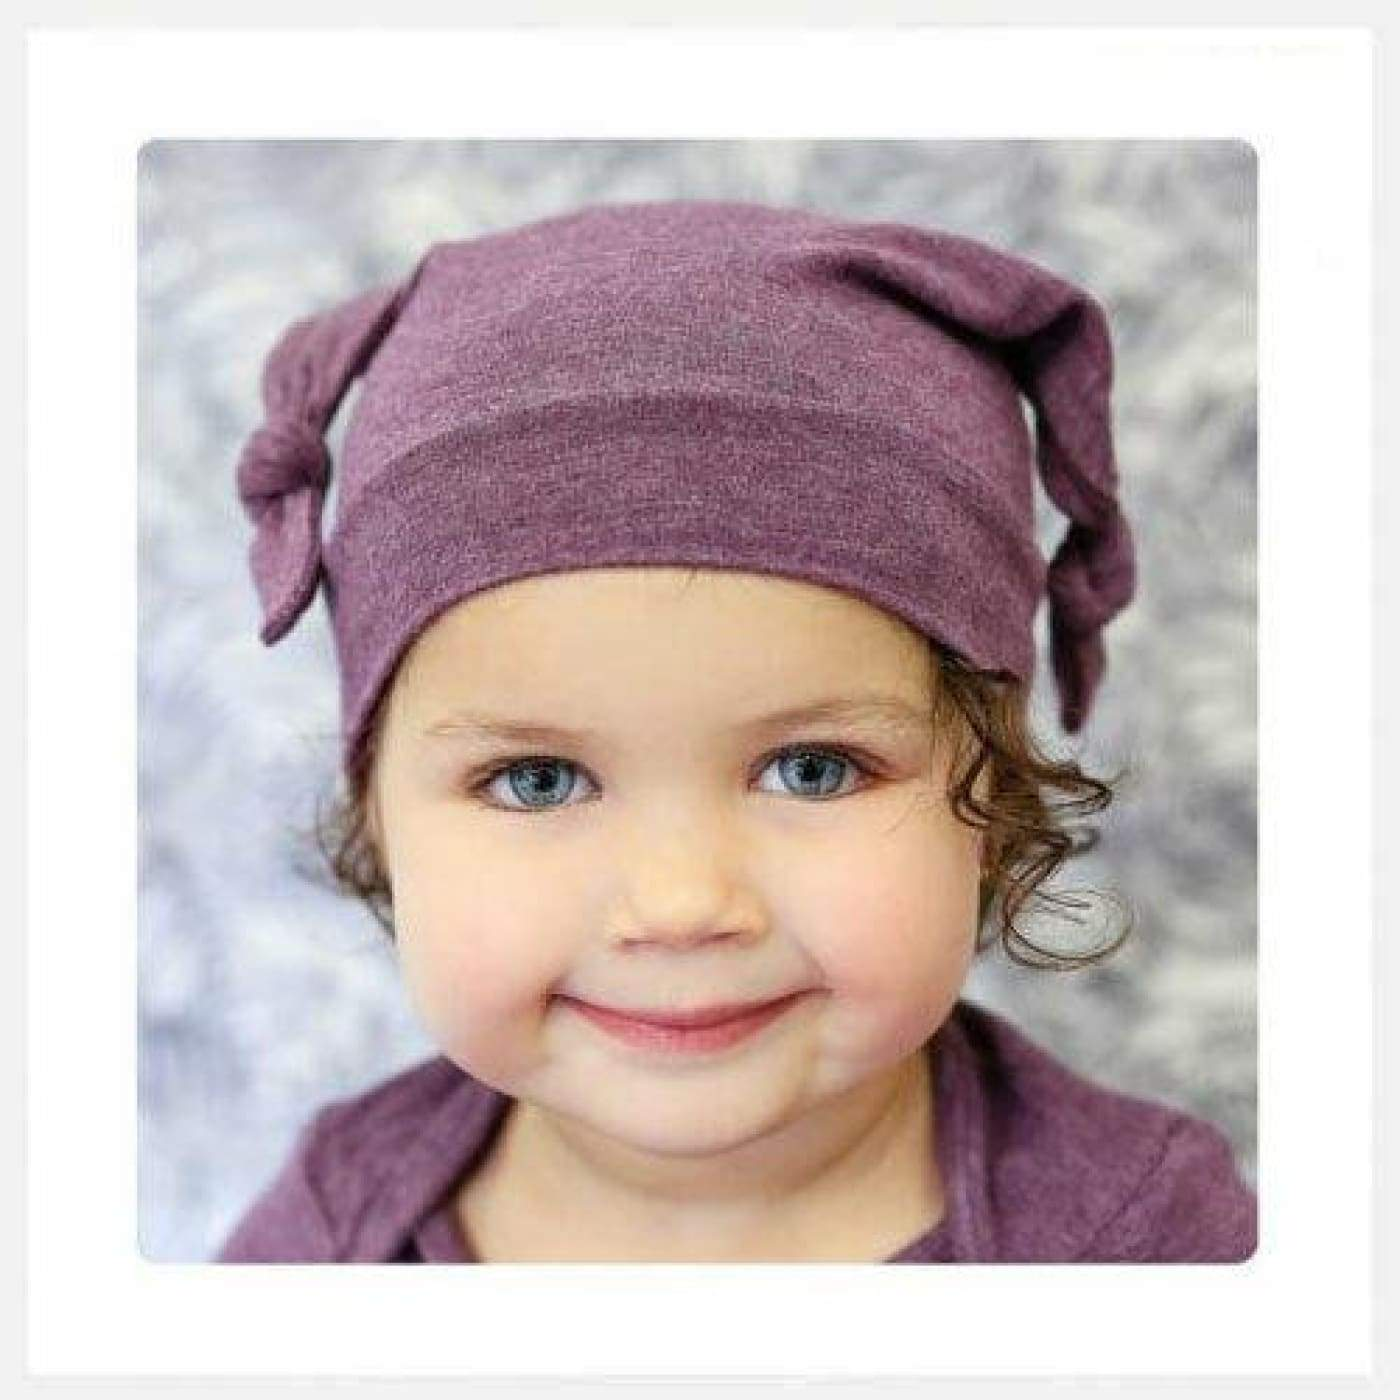 Mod Swad Bamboo Knot Beanie - Shangri la - Small - Small / Shangri la - BABY & TODDLER CLOTHING - BEANIES/HATS